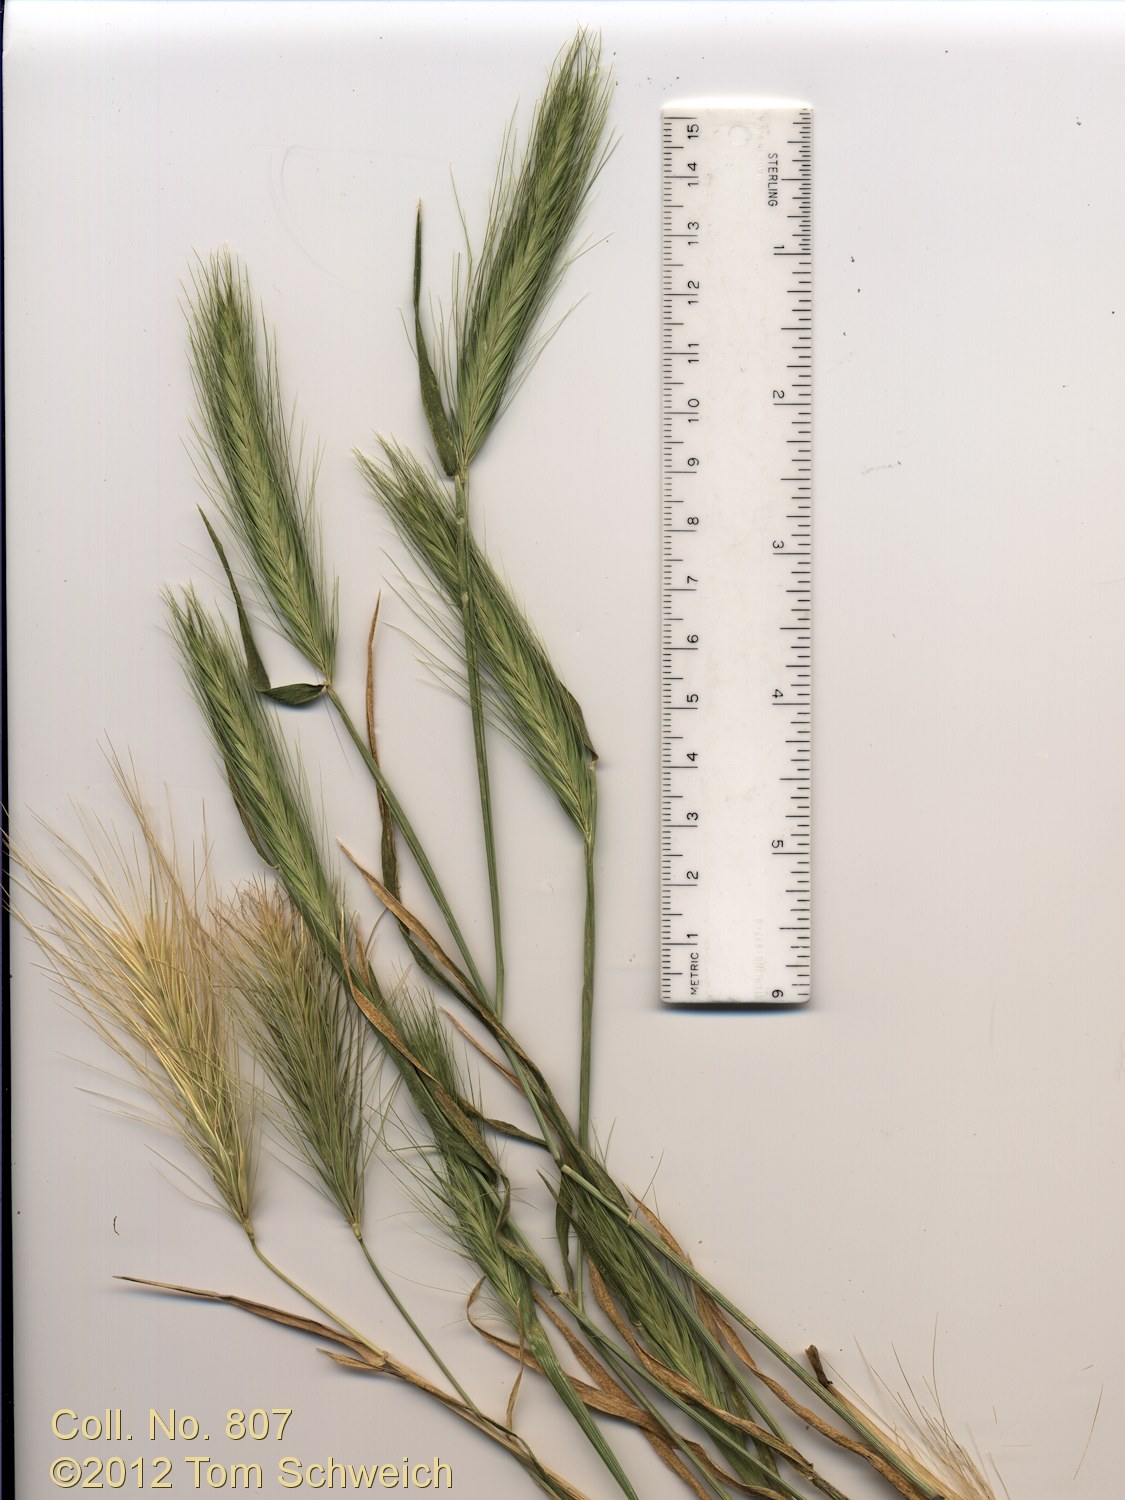 Poaceae Hordeum brachyantherum brachyantherum